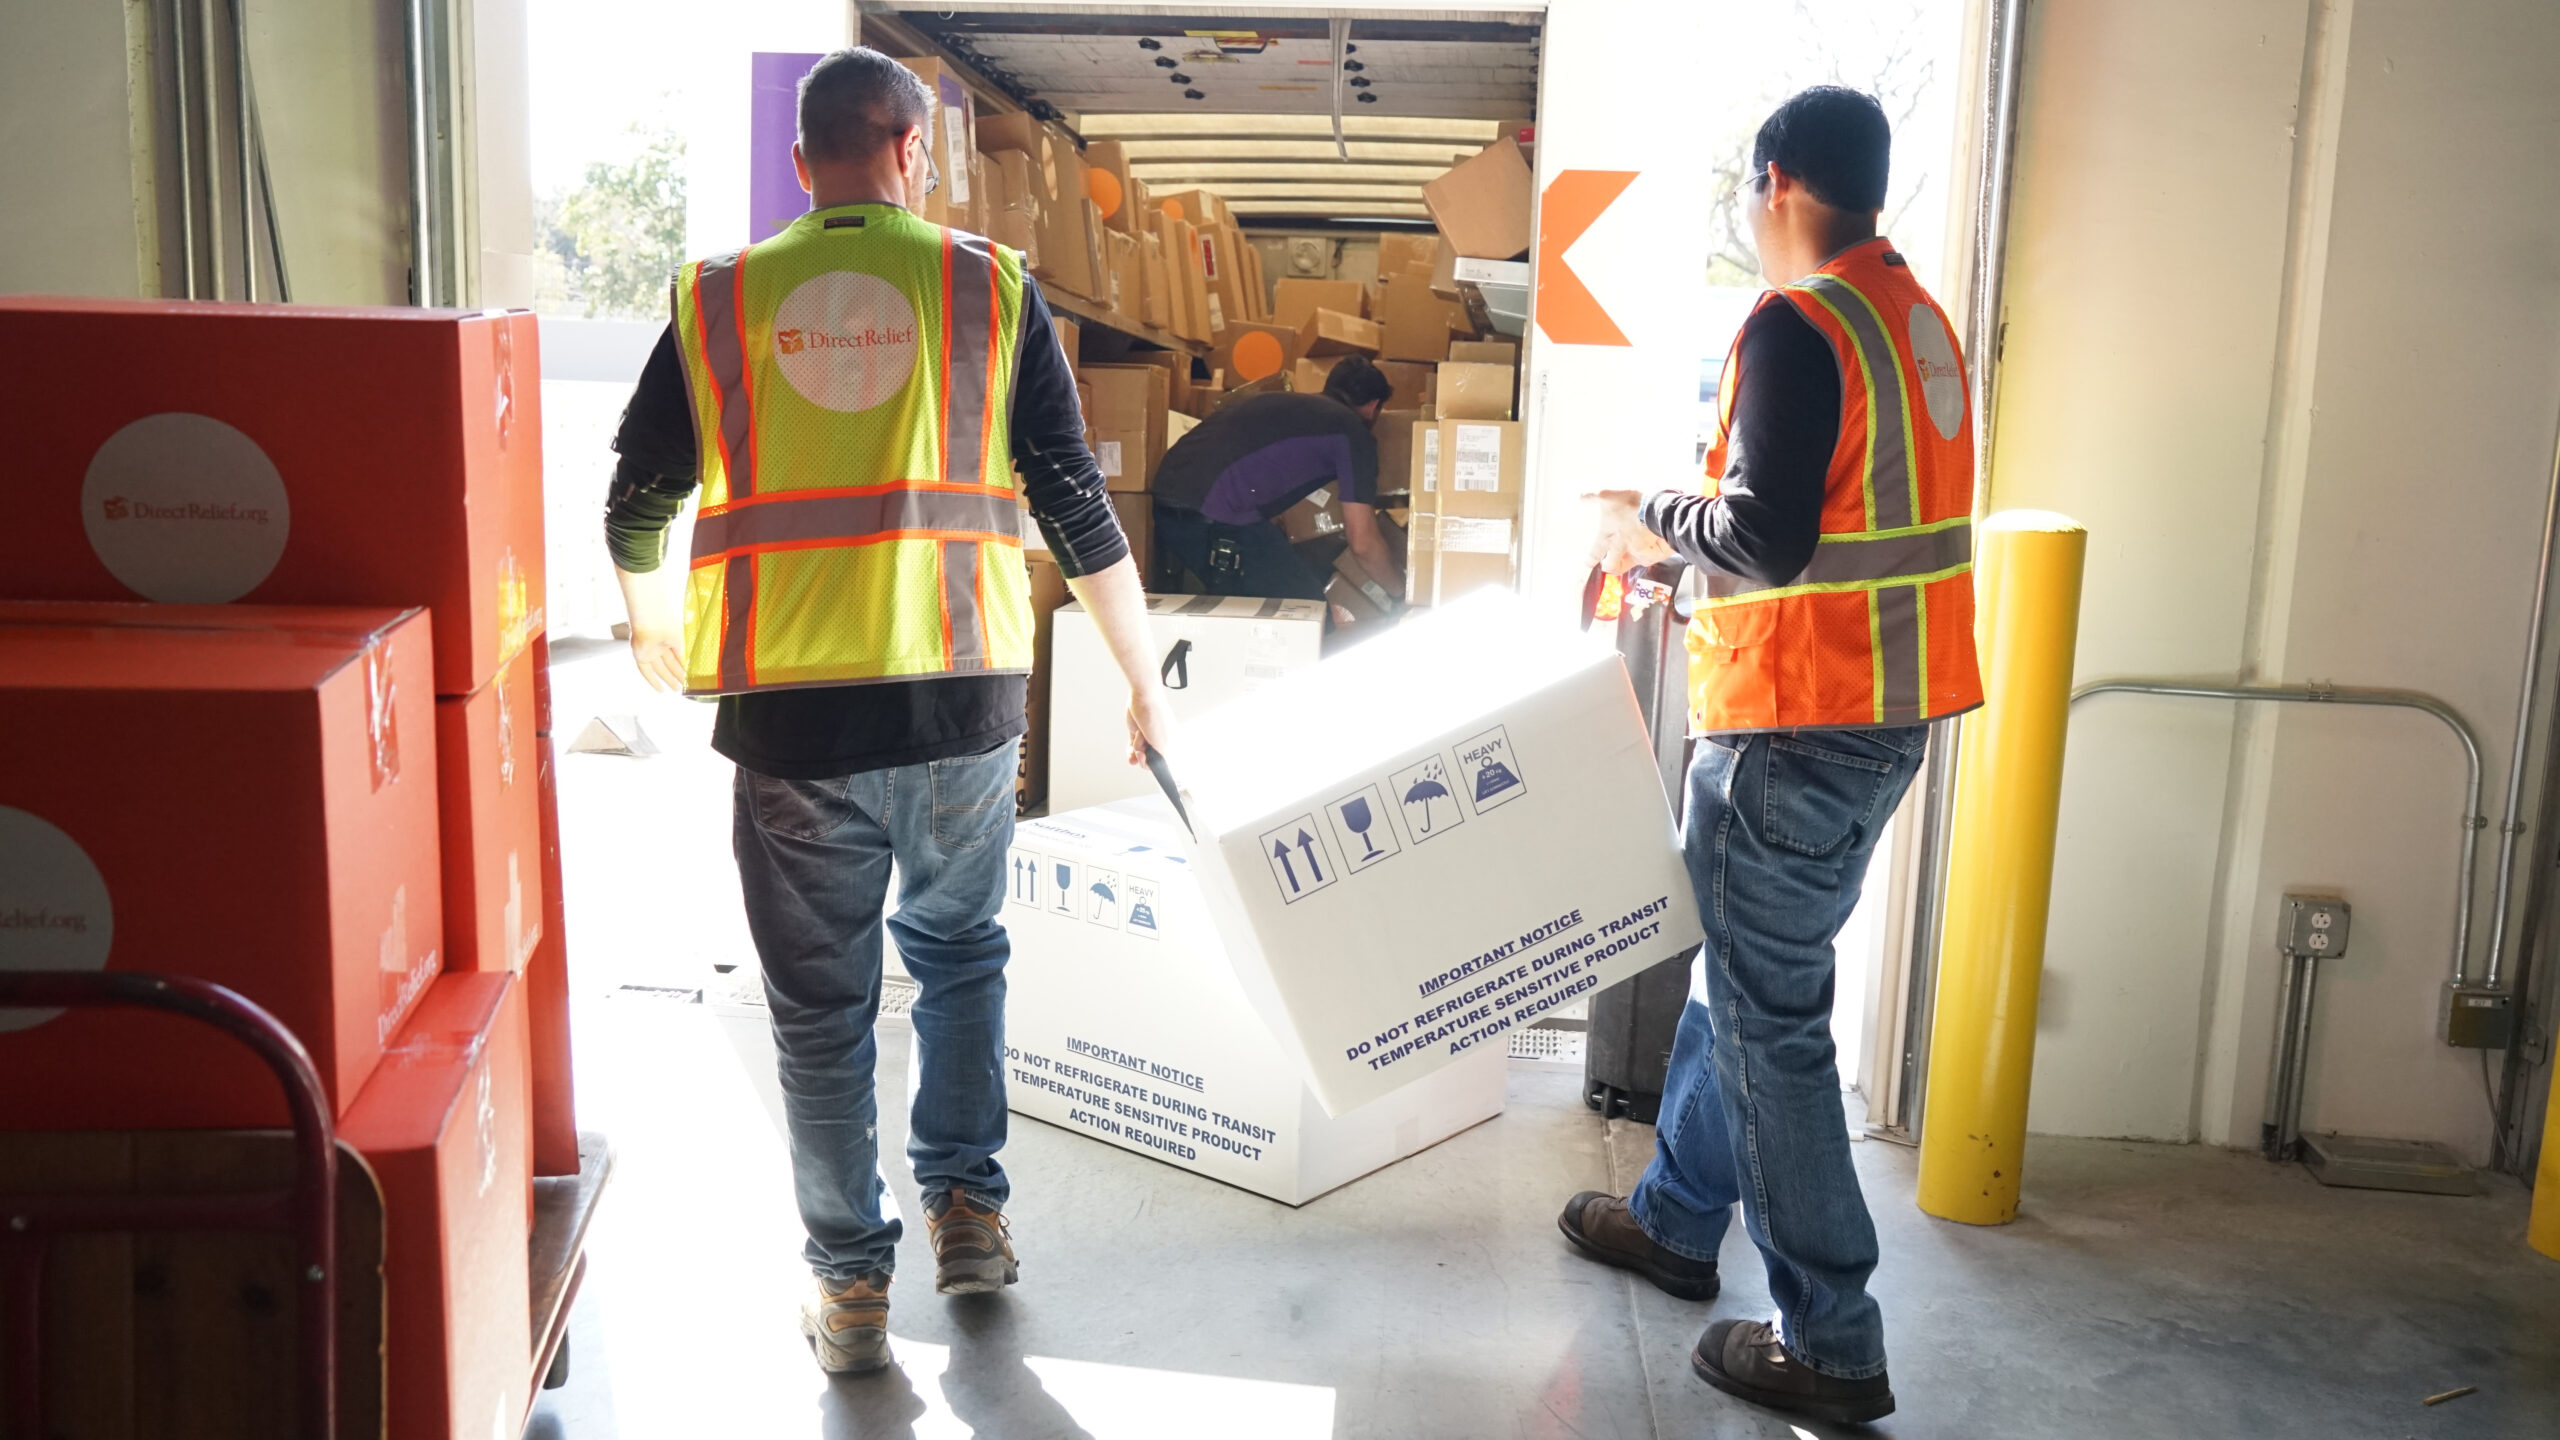 Shipments of vaccines and insulin leave Direct Relief's warehouse on March 21, 2019, bound for safety-net healthcare providers in states like Oklahoma, Kansas, New Jersey, Connecticut and many more. The shipments were part of Direct Relief's ongoing support of essential medicines to healthcare facilities across the United States. (Lara Cooper/Direct Relief)